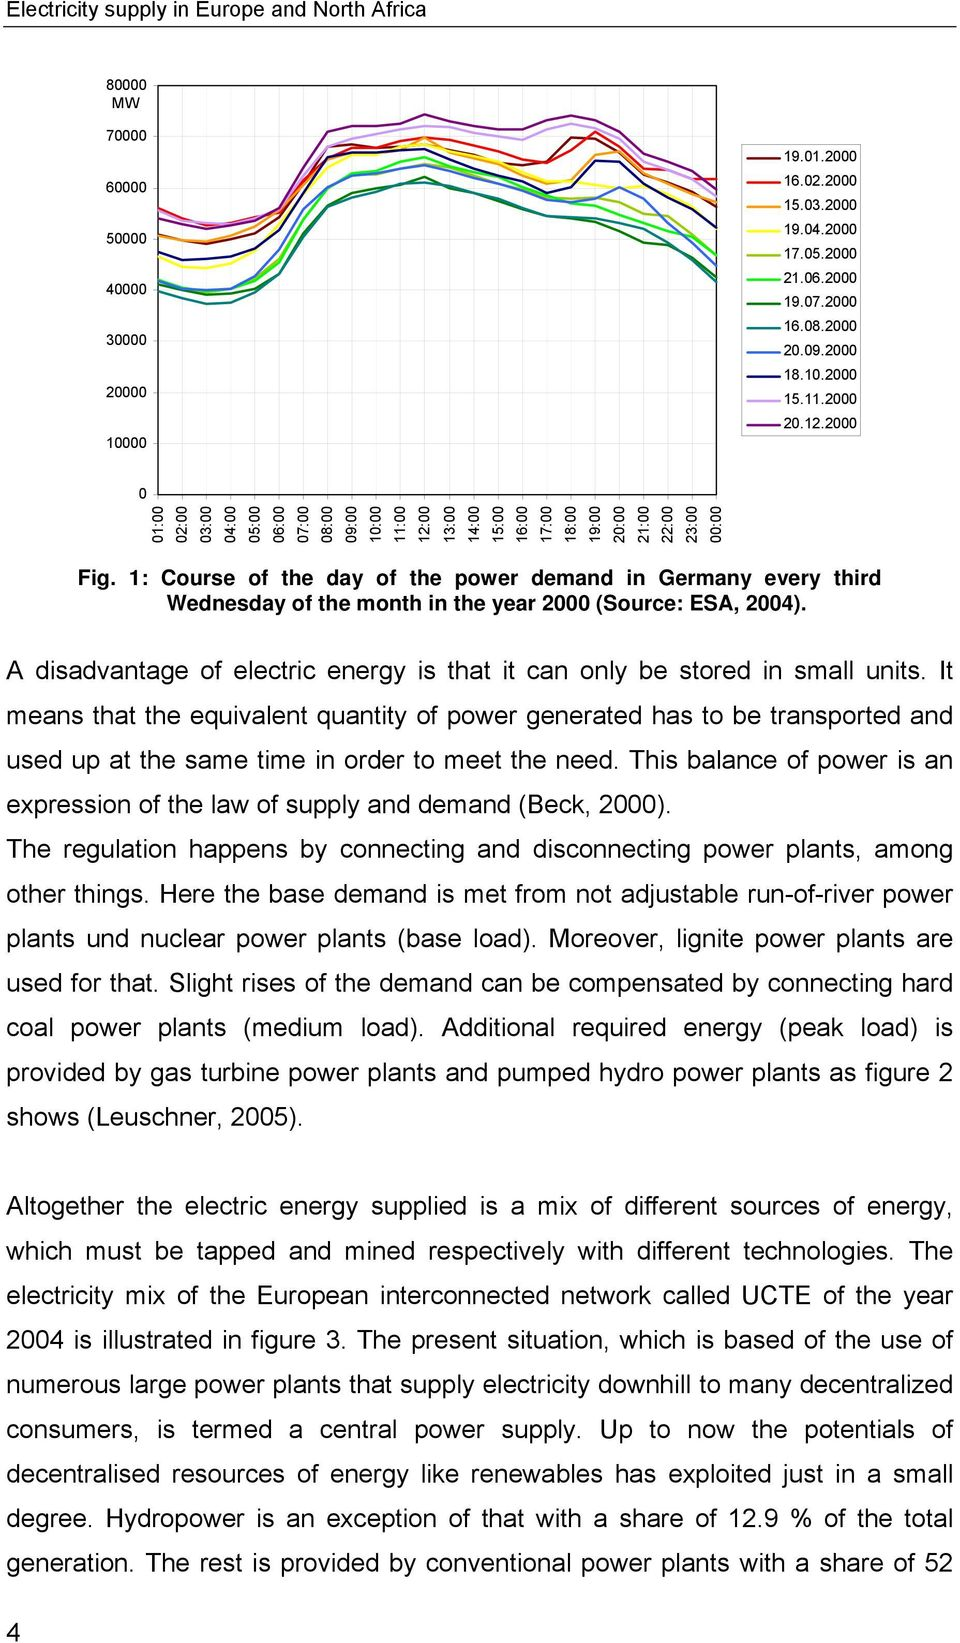 1: Course of the day of the power demand in Germany every third Wednesday of the month in the year 2000 (Source: ESA, 2004).